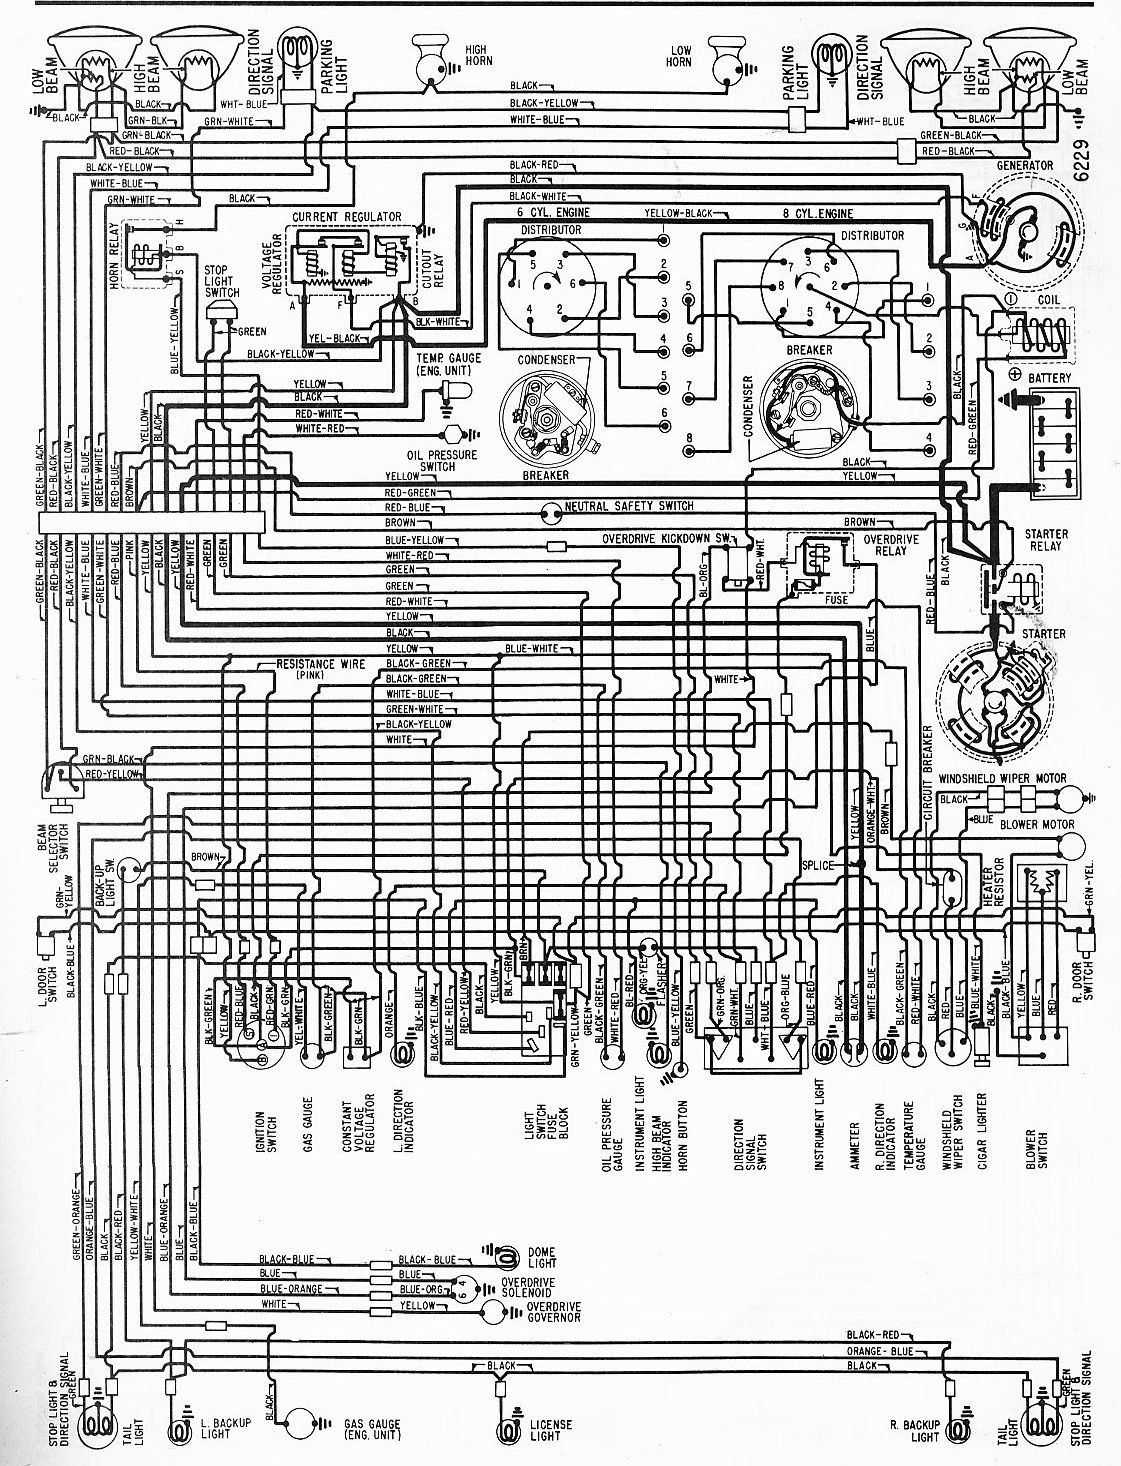 Diagram 1967 Chevy Truck Fuse Box Diagram Wiring Schematic Full Version Hd Quality Wiring Schematic Schematictools Biorygen It